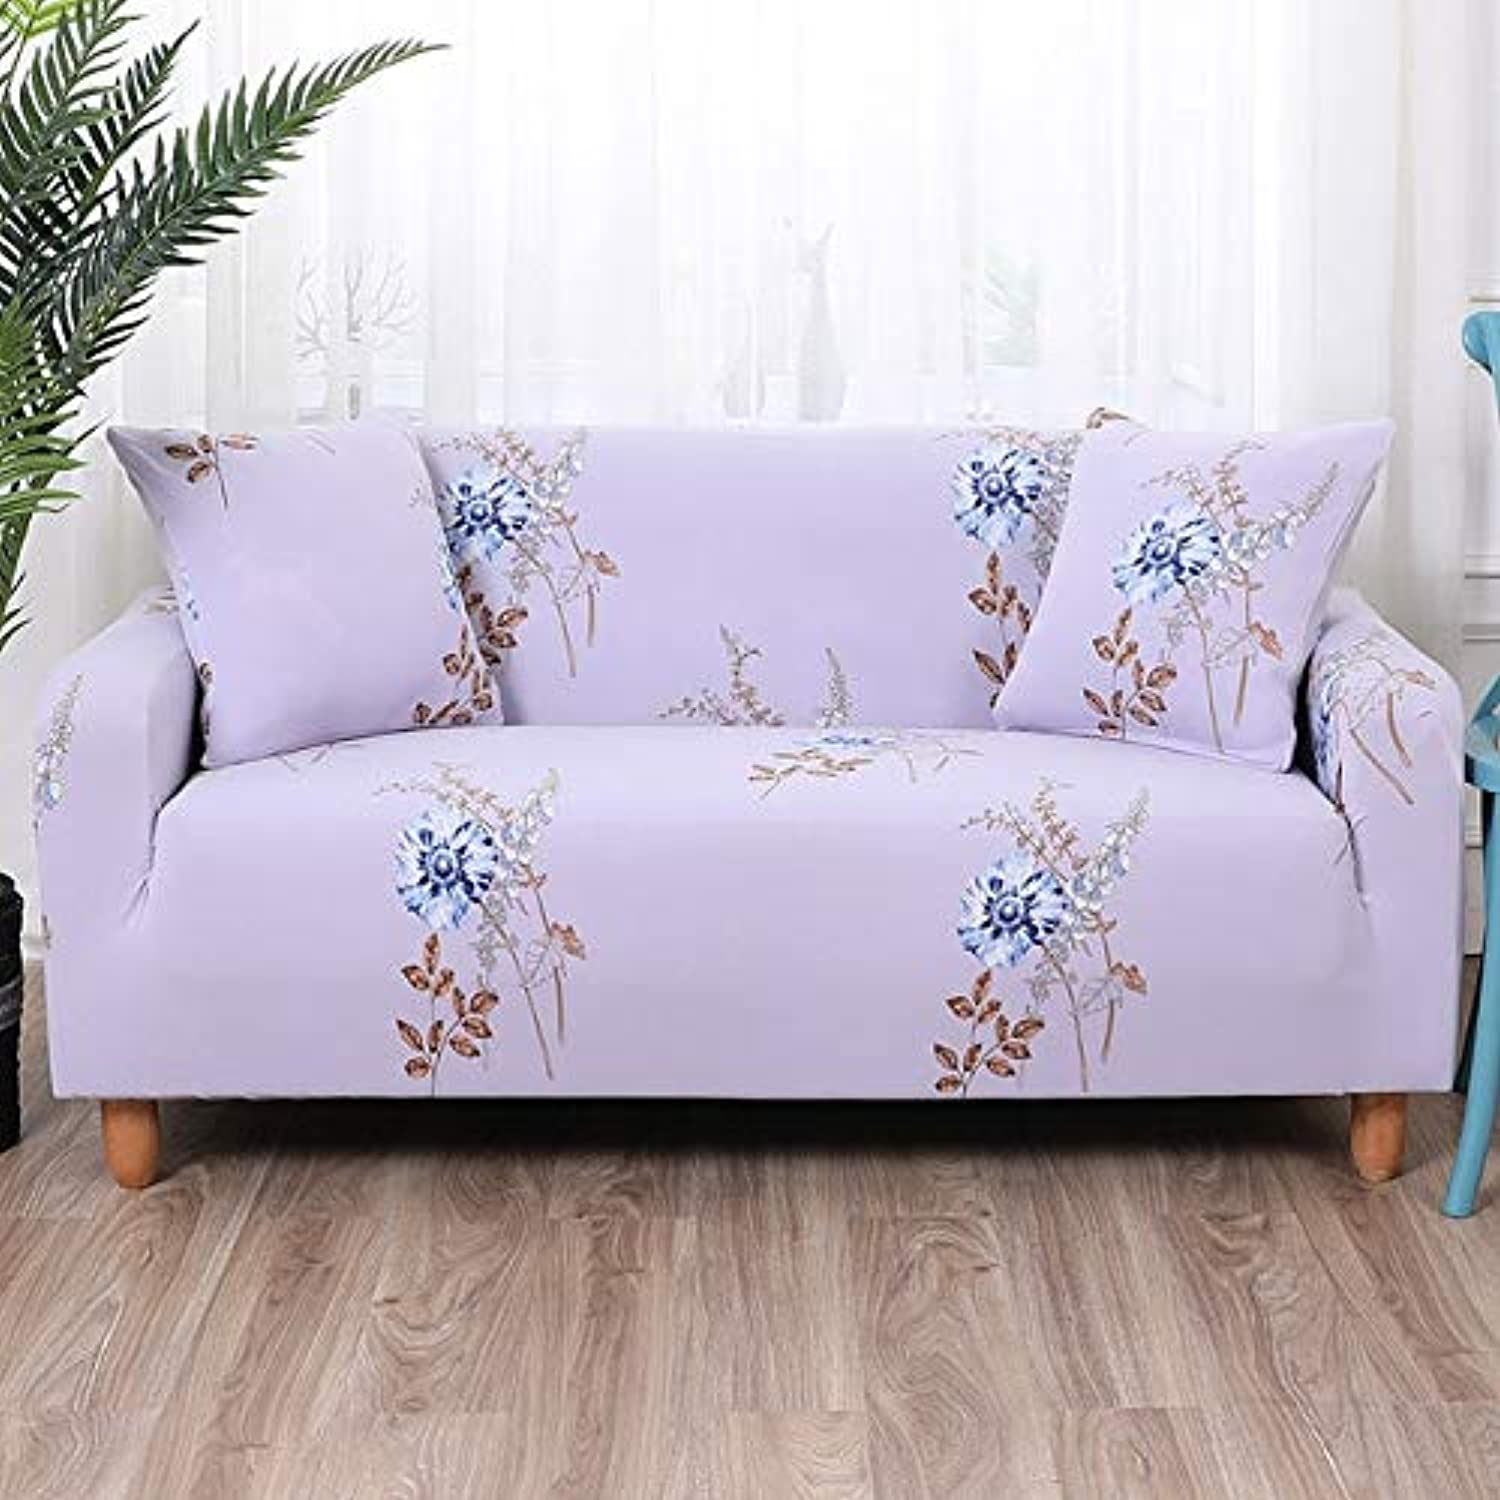 Fashion Printing Sofa Cover Spandex high Elasticity case Sofa Sofas for Living Room Removable Cleaning Essential Home   BLN-yzdx, Single seat